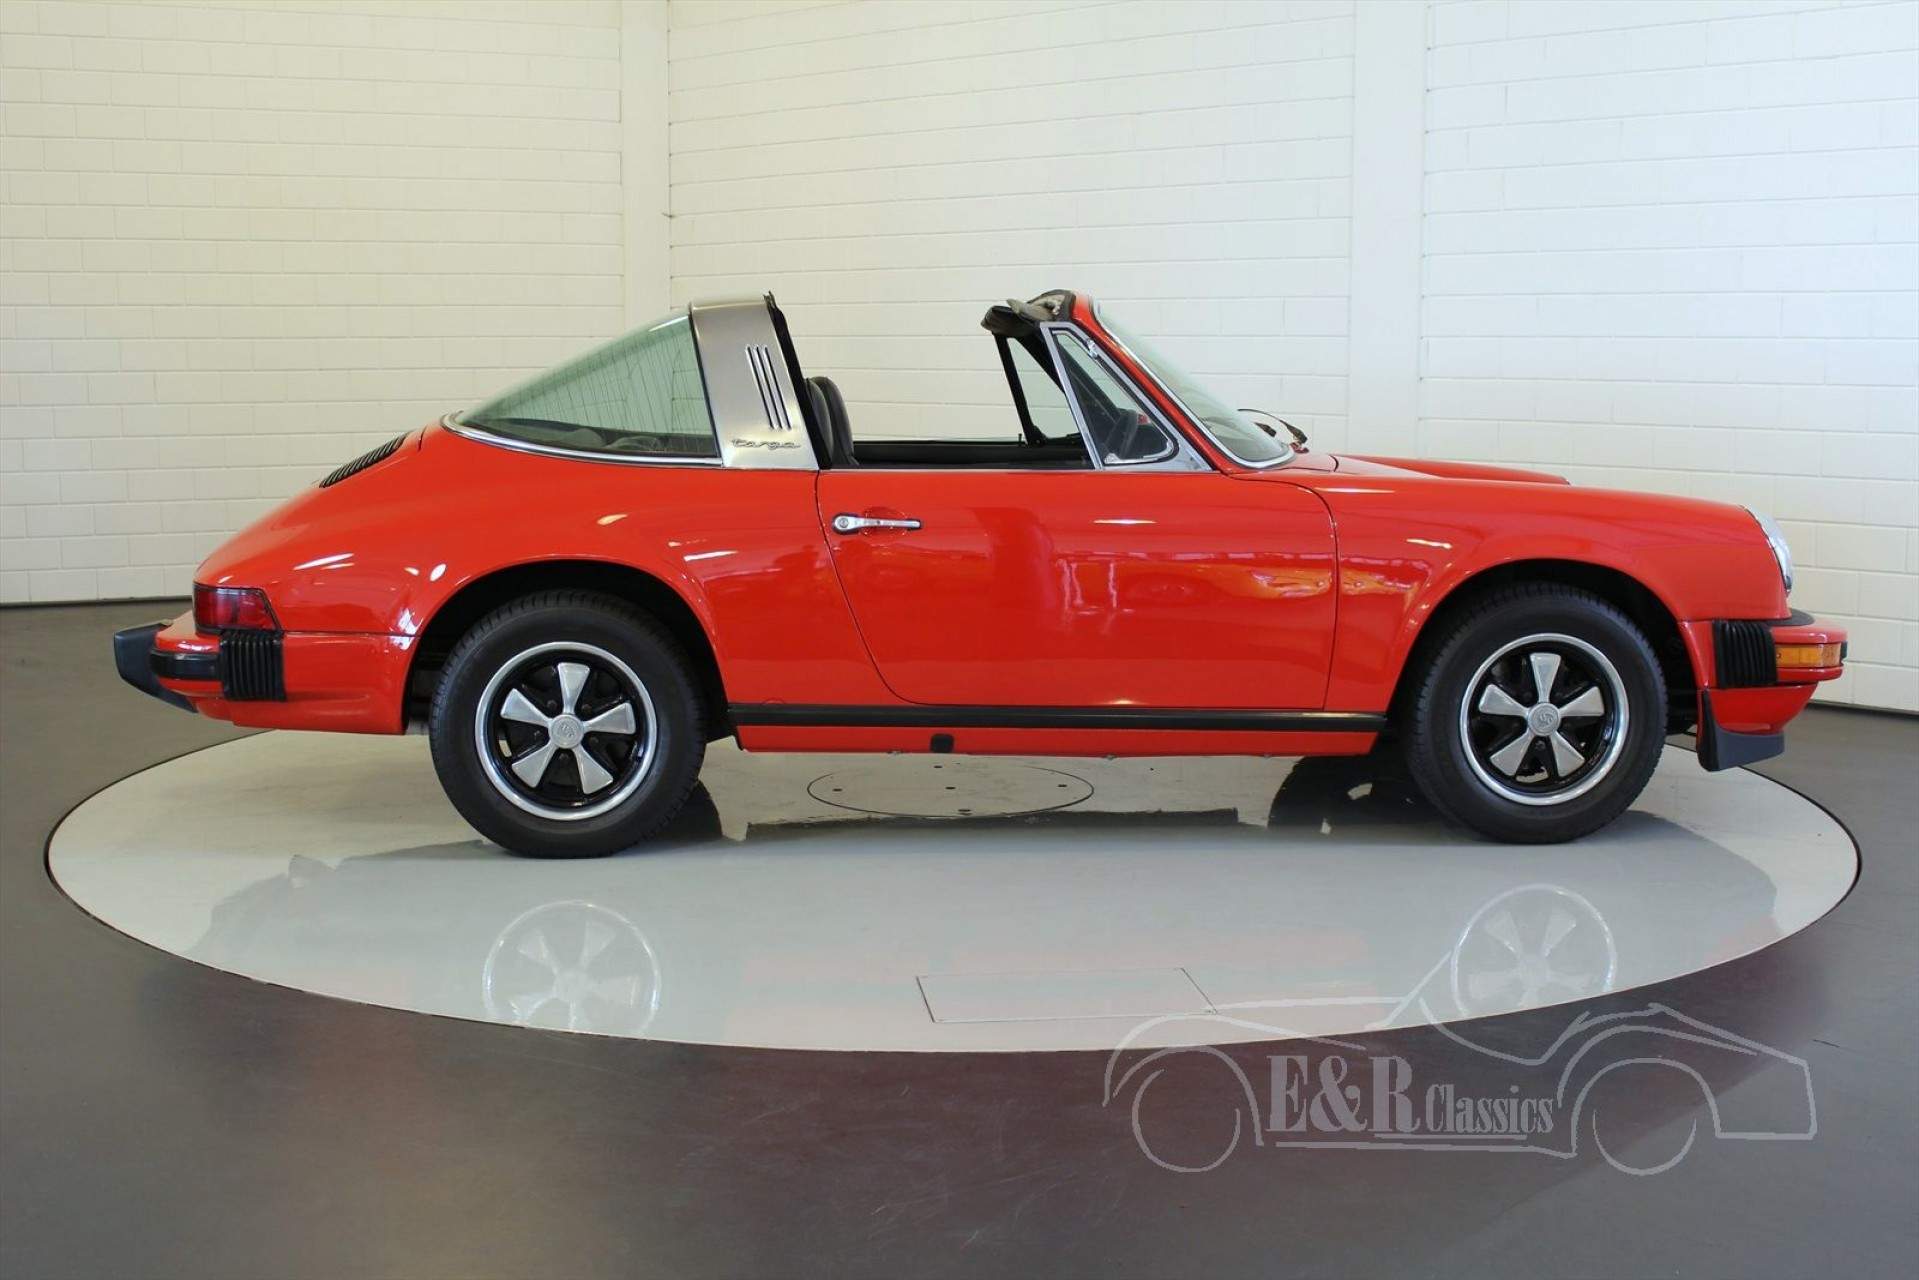 porsche 911 s targa small body 1976 vendre erclassics. Black Bedroom Furniture Sets. Home Design Ideas